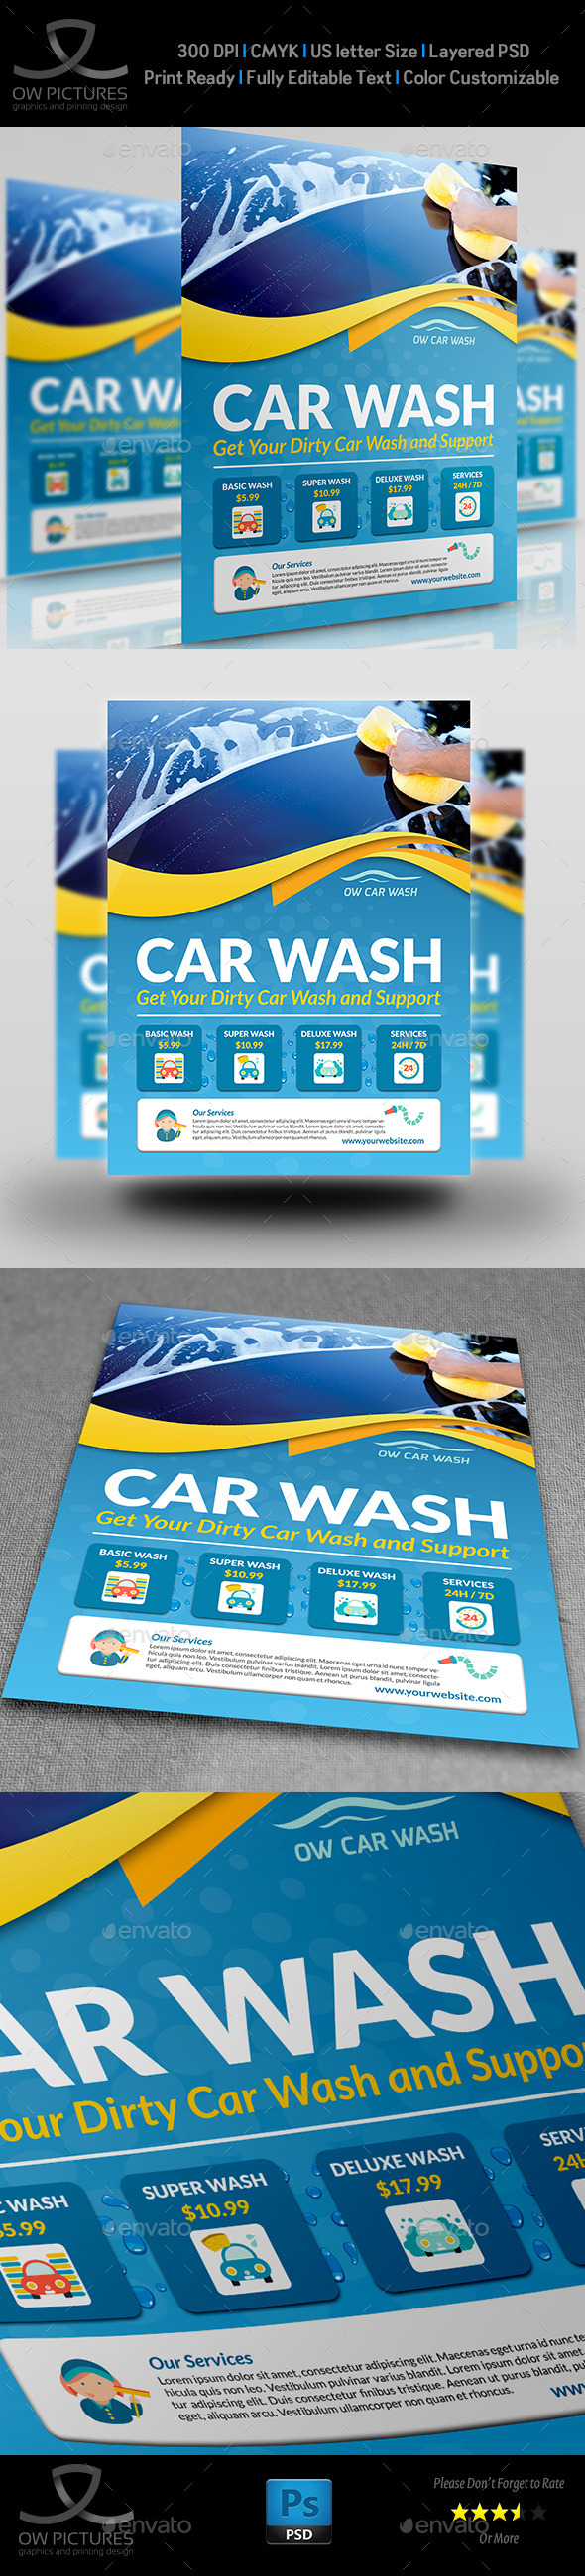 car wash poster template free - car wash services flyer templates graphicriver